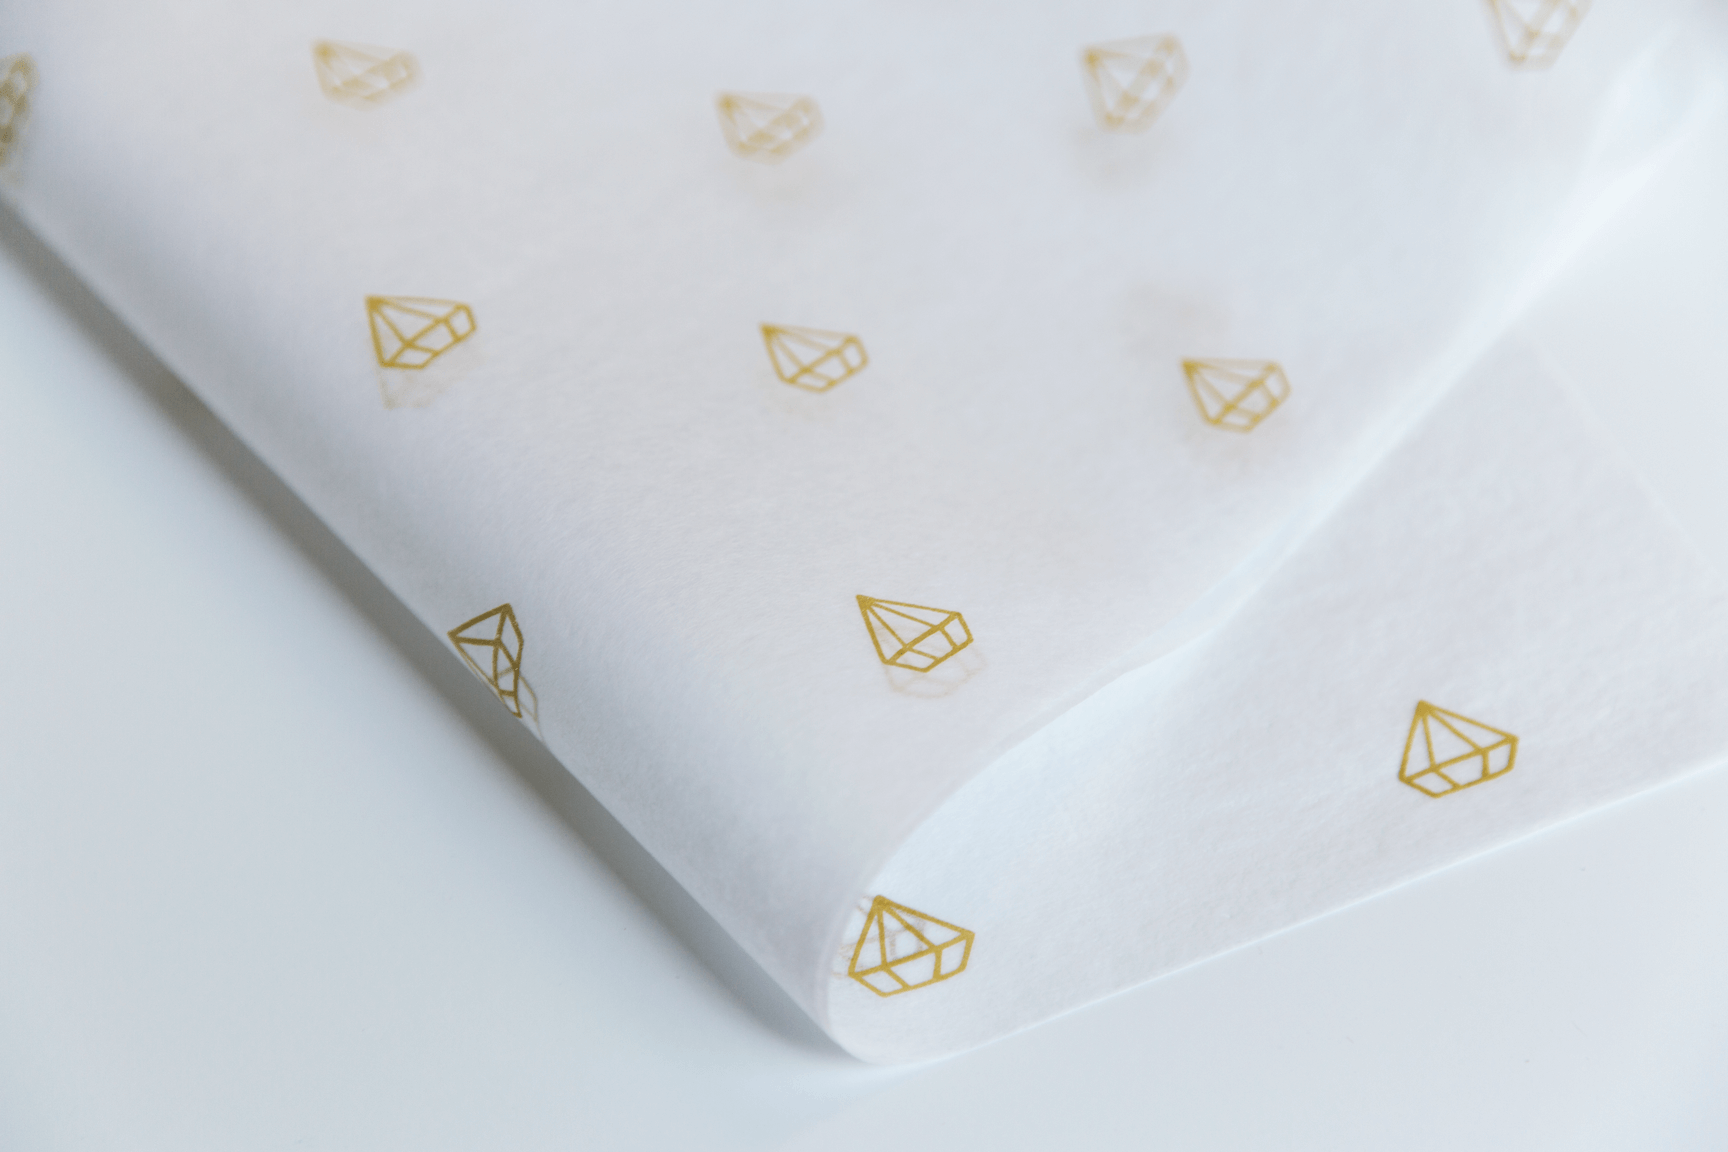 tissue paper with logo